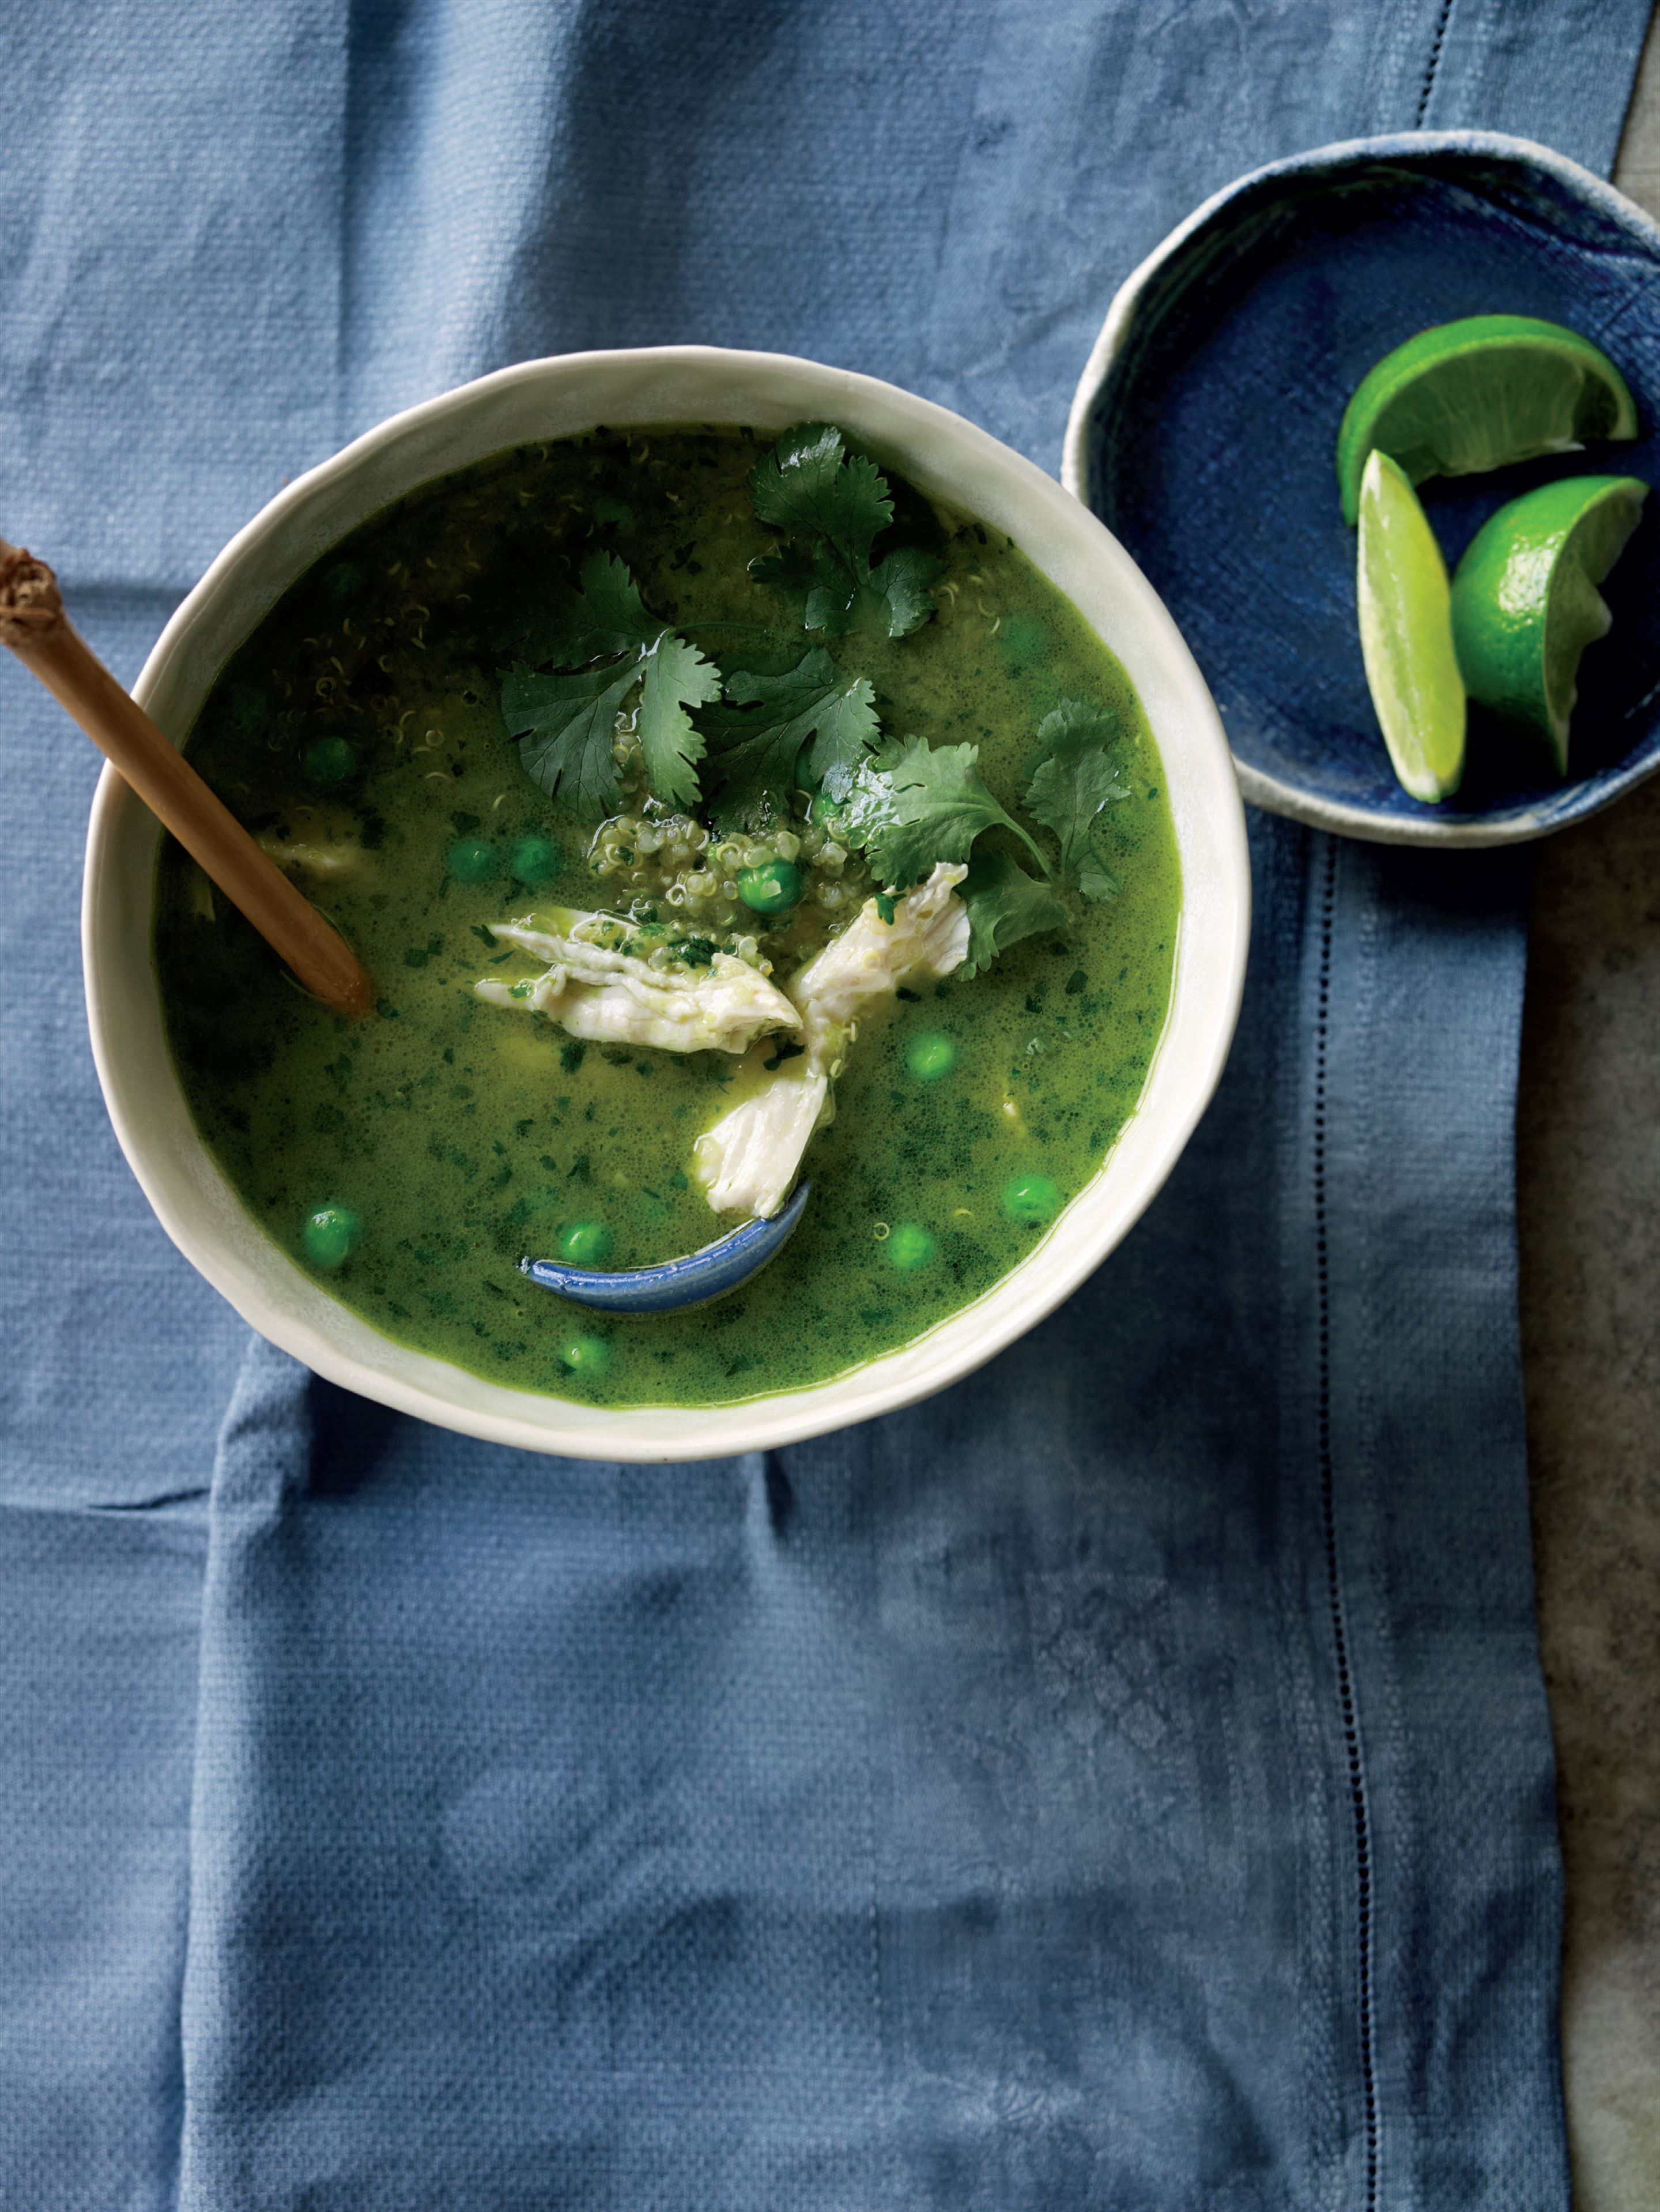 Quinoa aguadito, or peruvian chicken and coriander soup